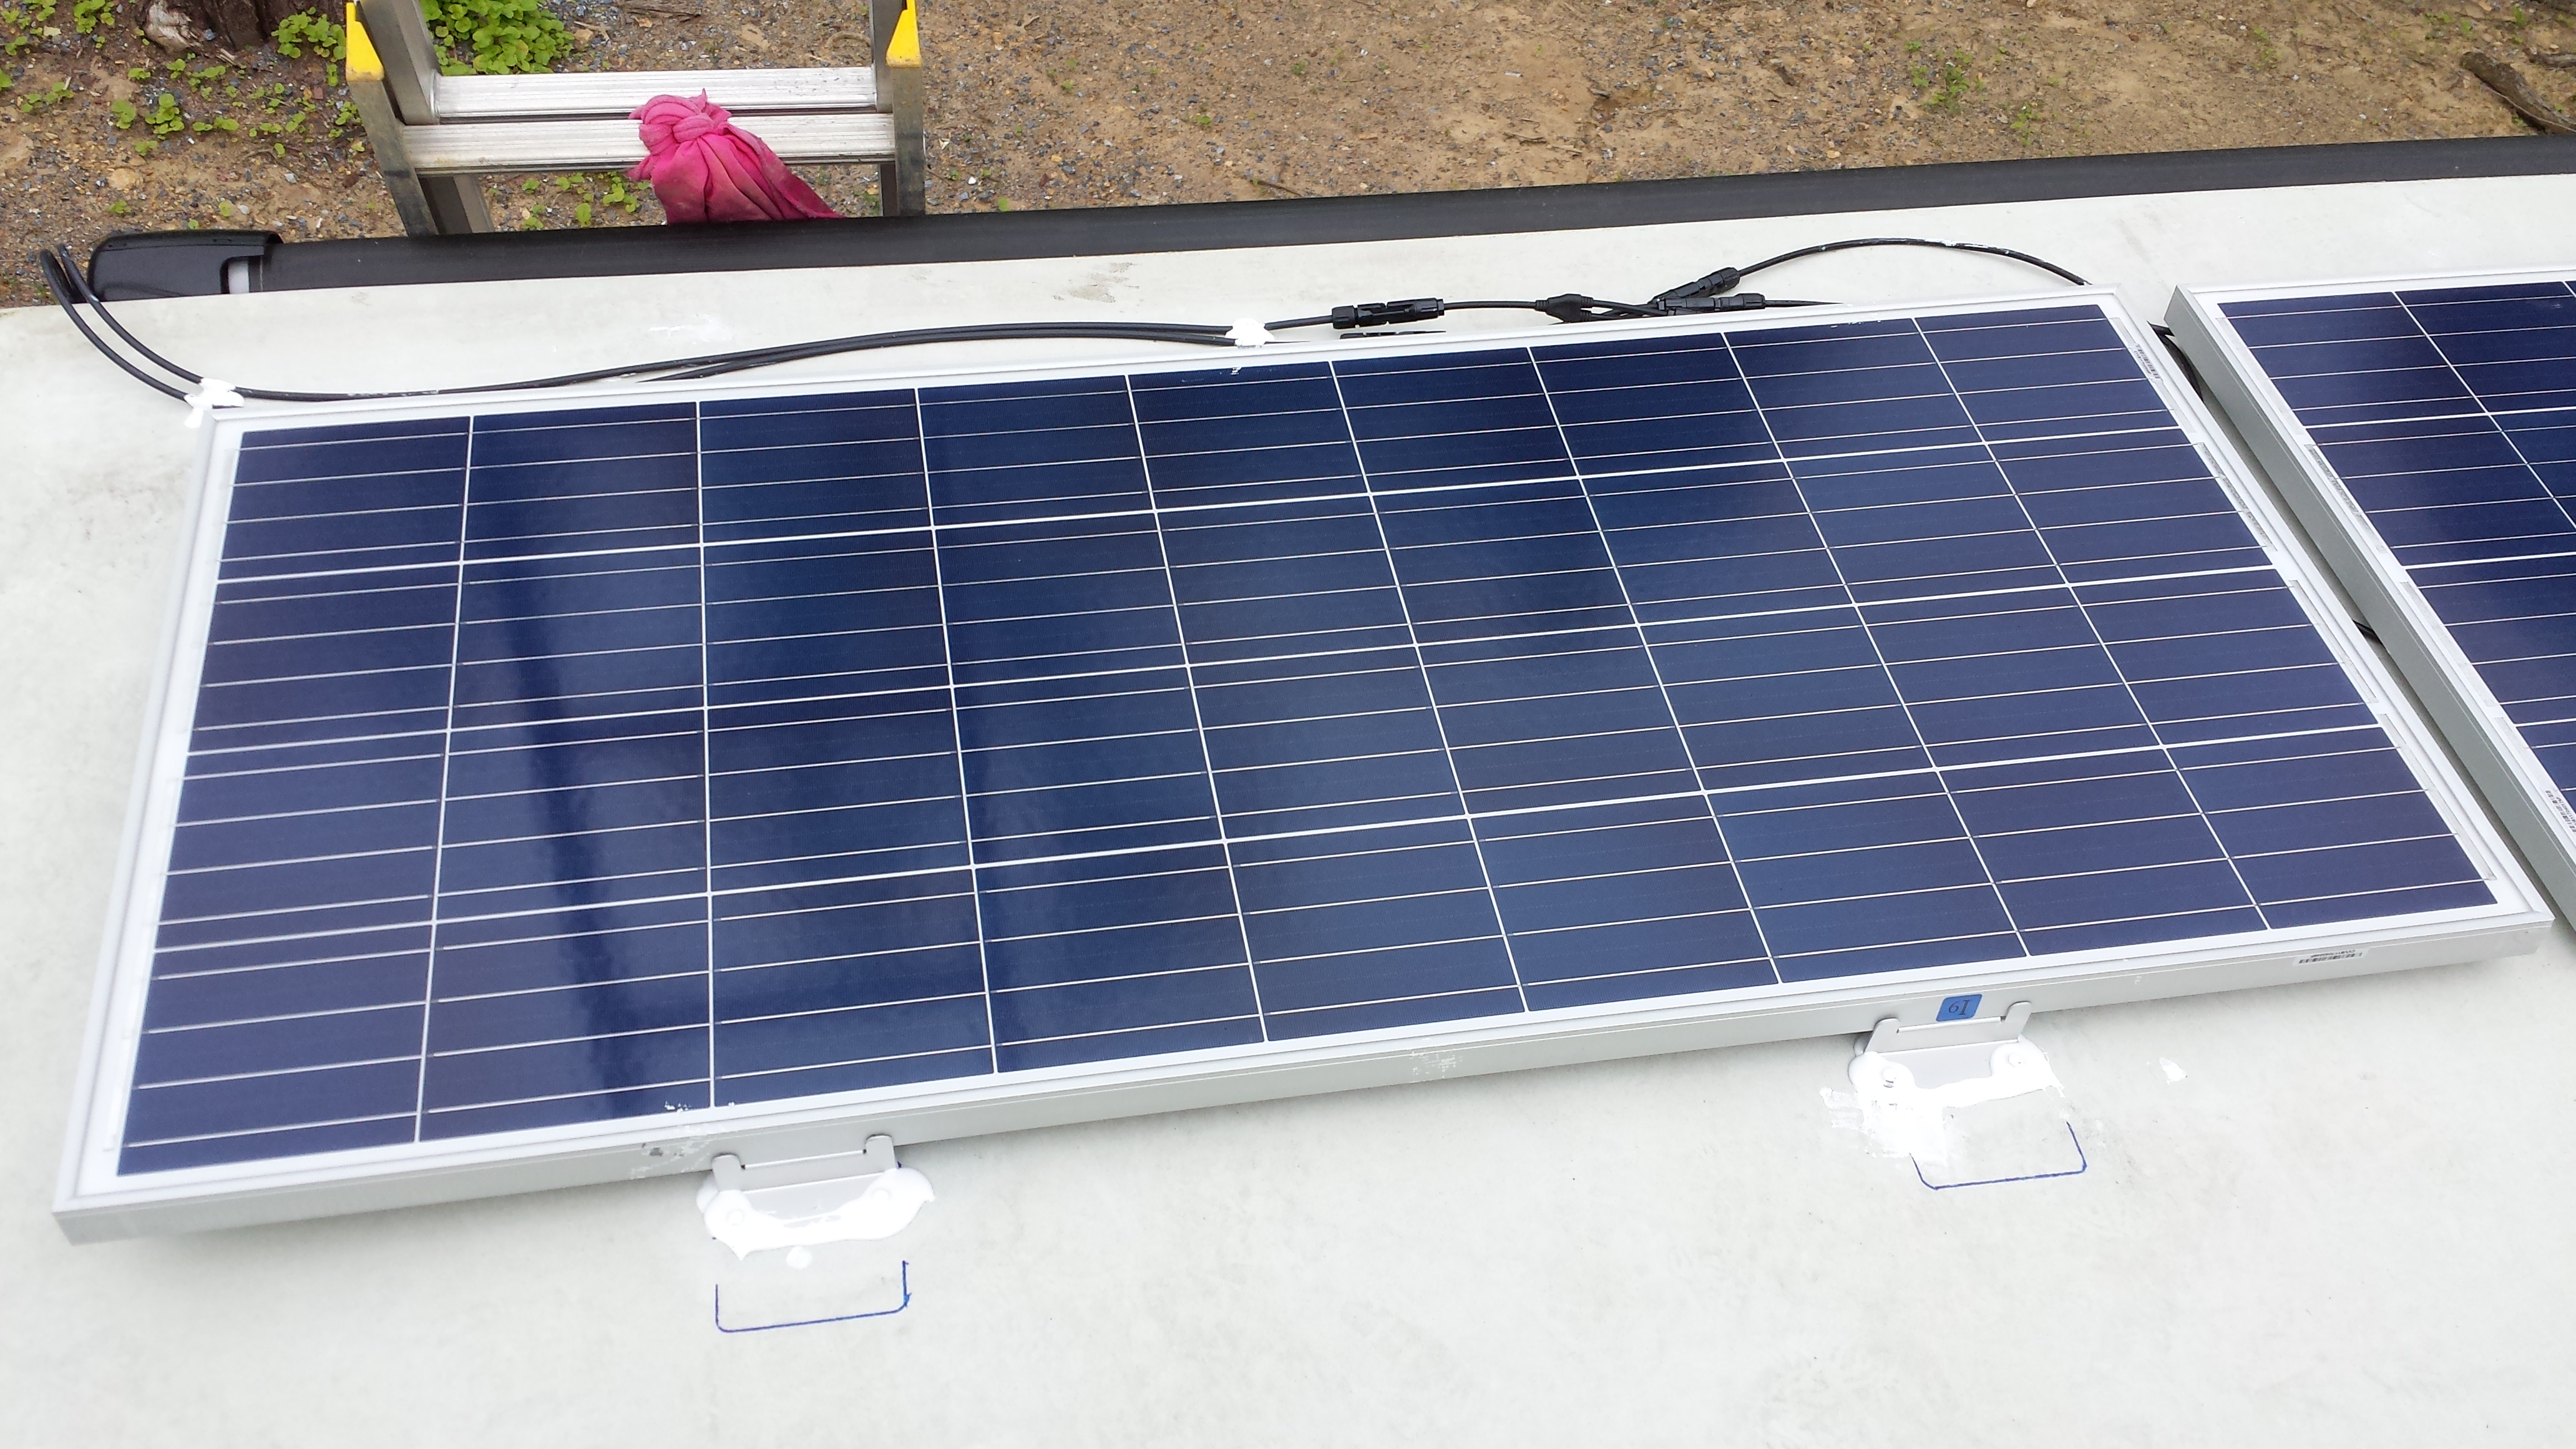 Interesting Links Advanced Tutorials Battery Wiring Diagrams For Solar Energy Systems Nice Clean Install By Jim In Pa On 2 Panel System With Tristar 30a Mppt Custom Upgrade